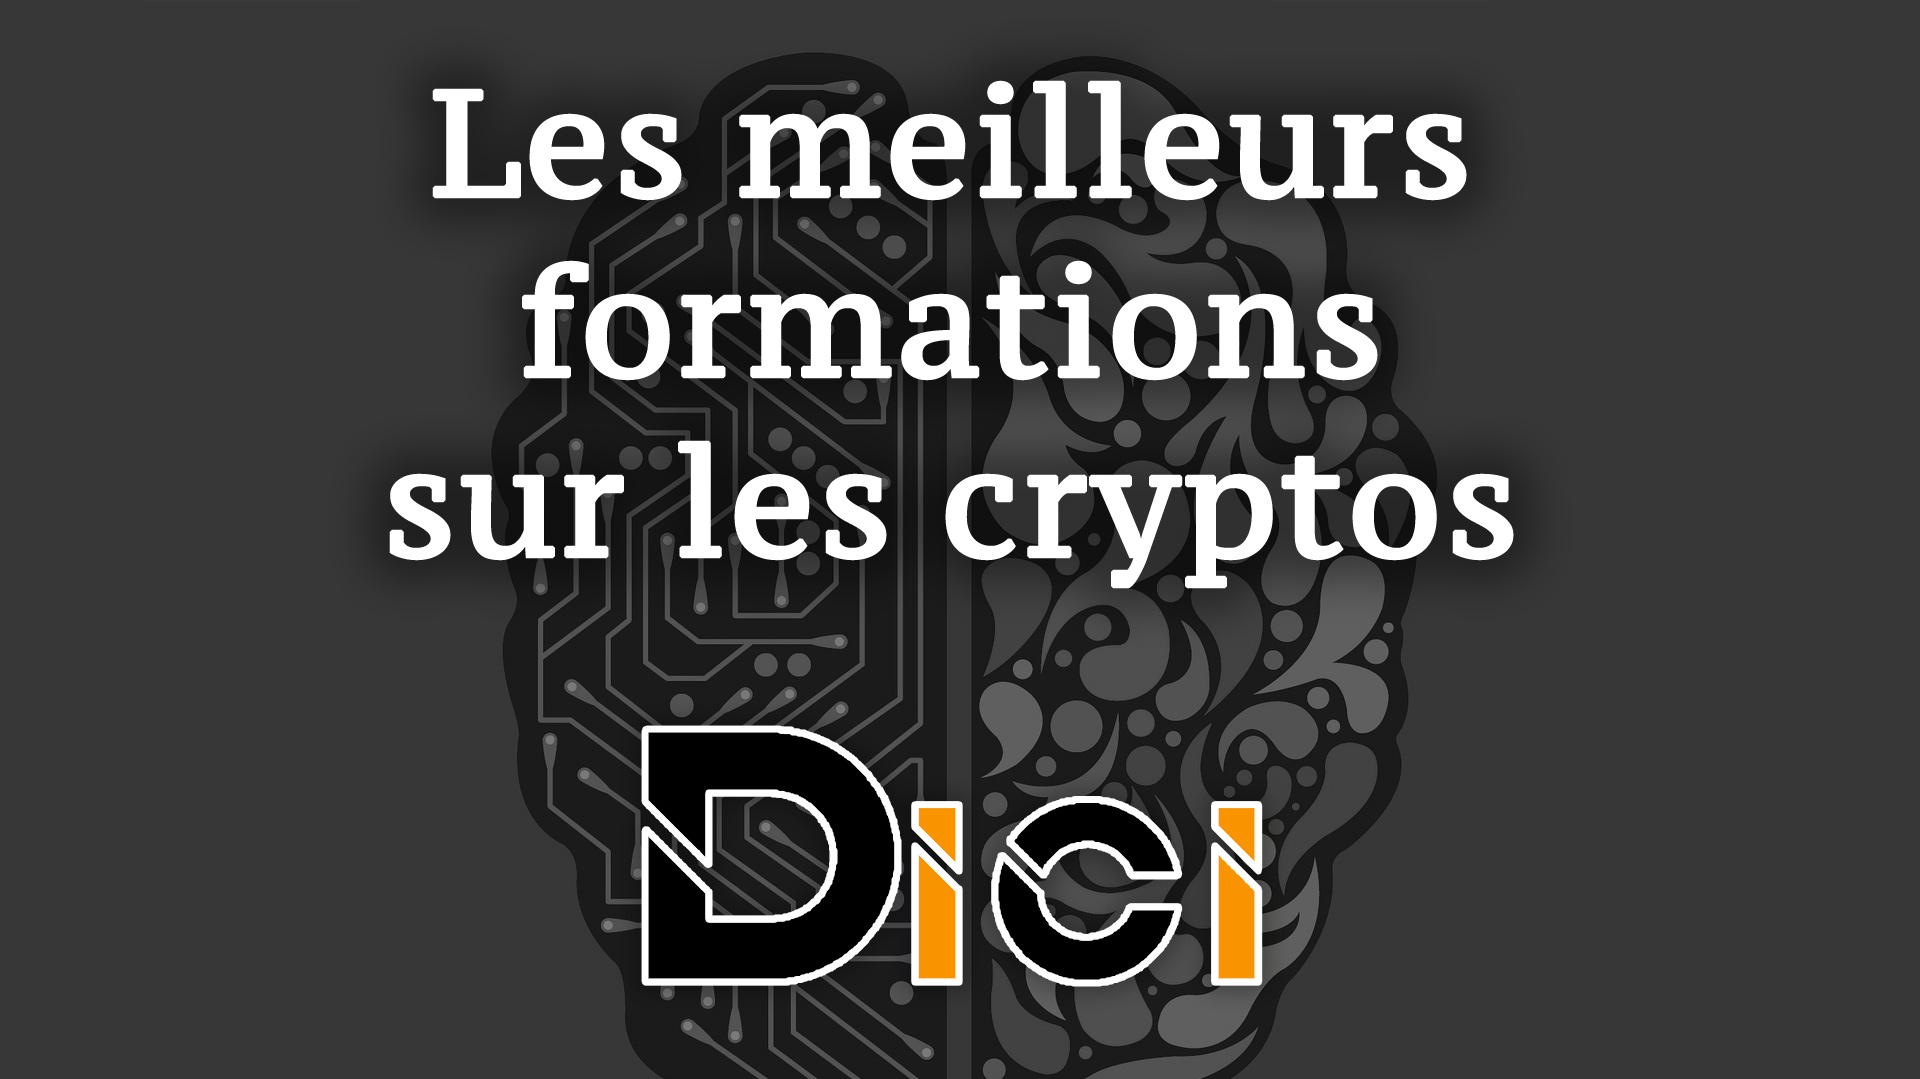 Les meilleurs formations cryptos<span class=